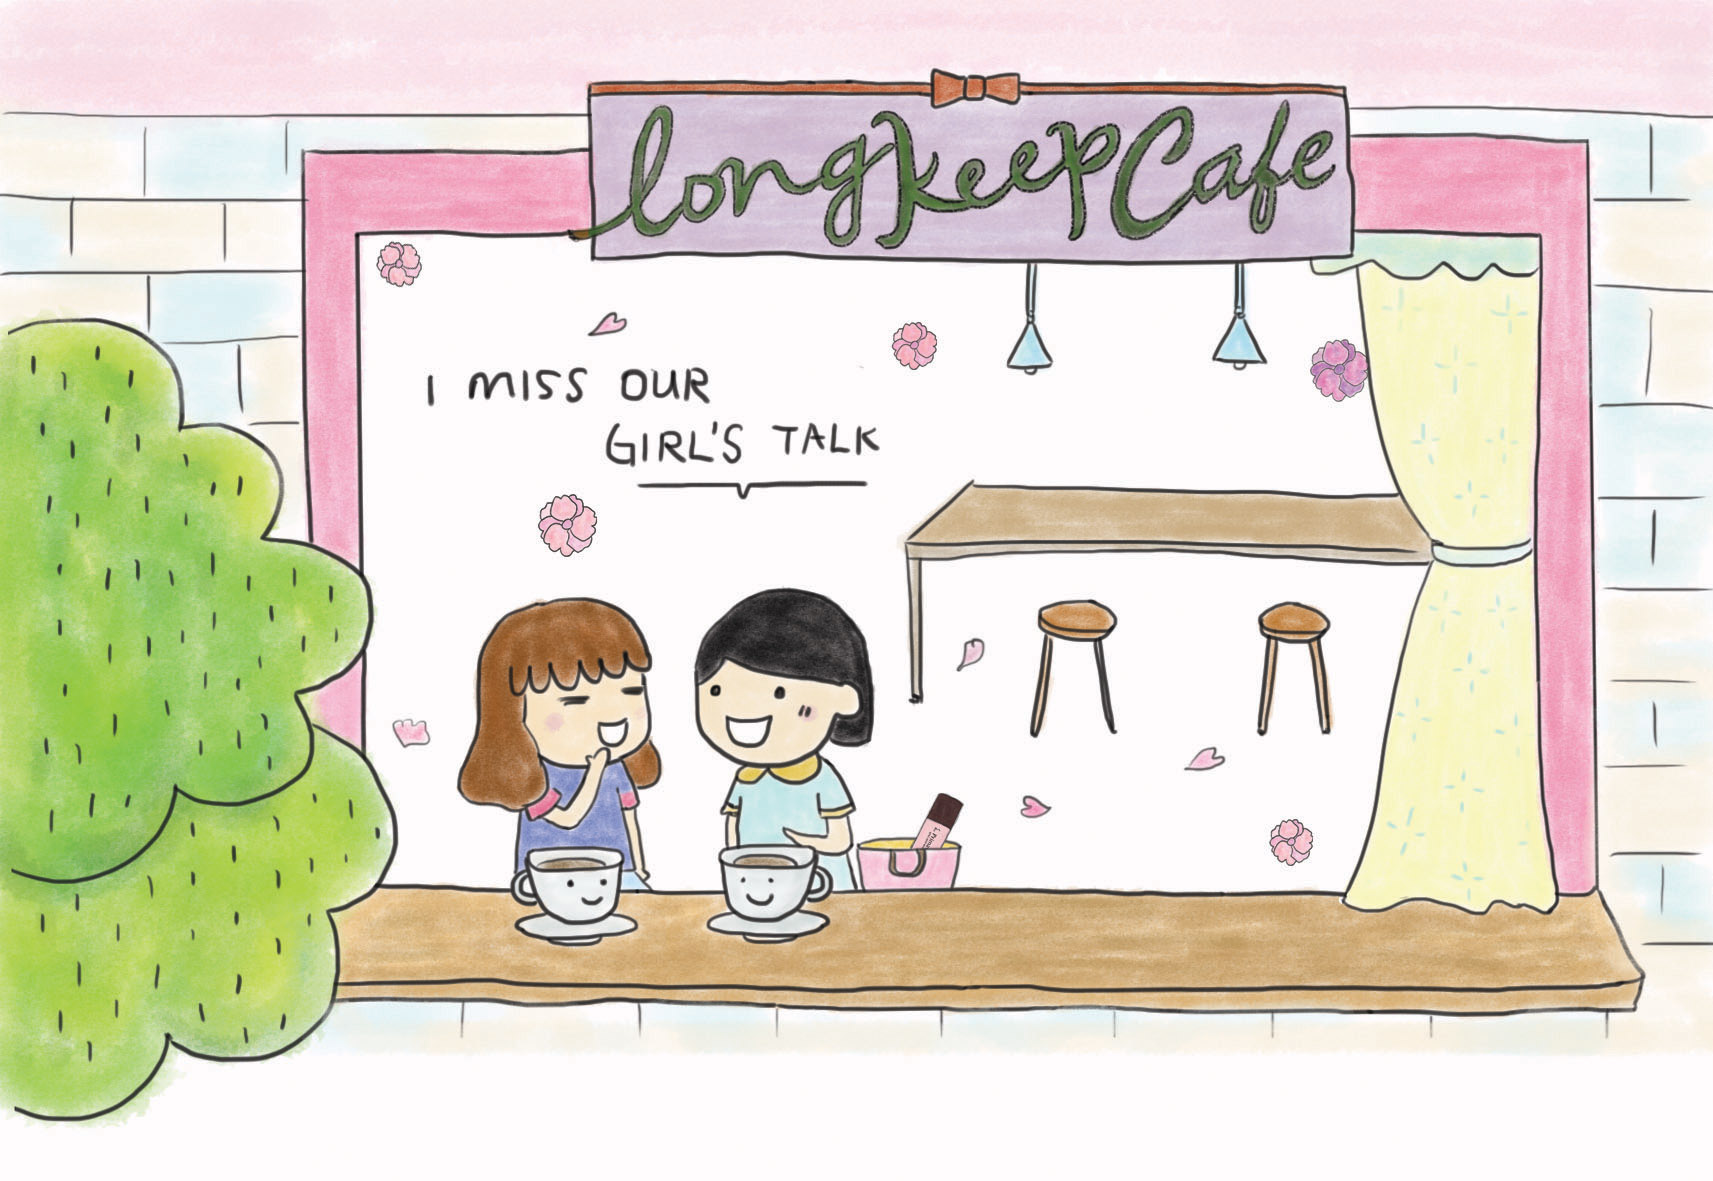 Postcard--I miss our girl's talk